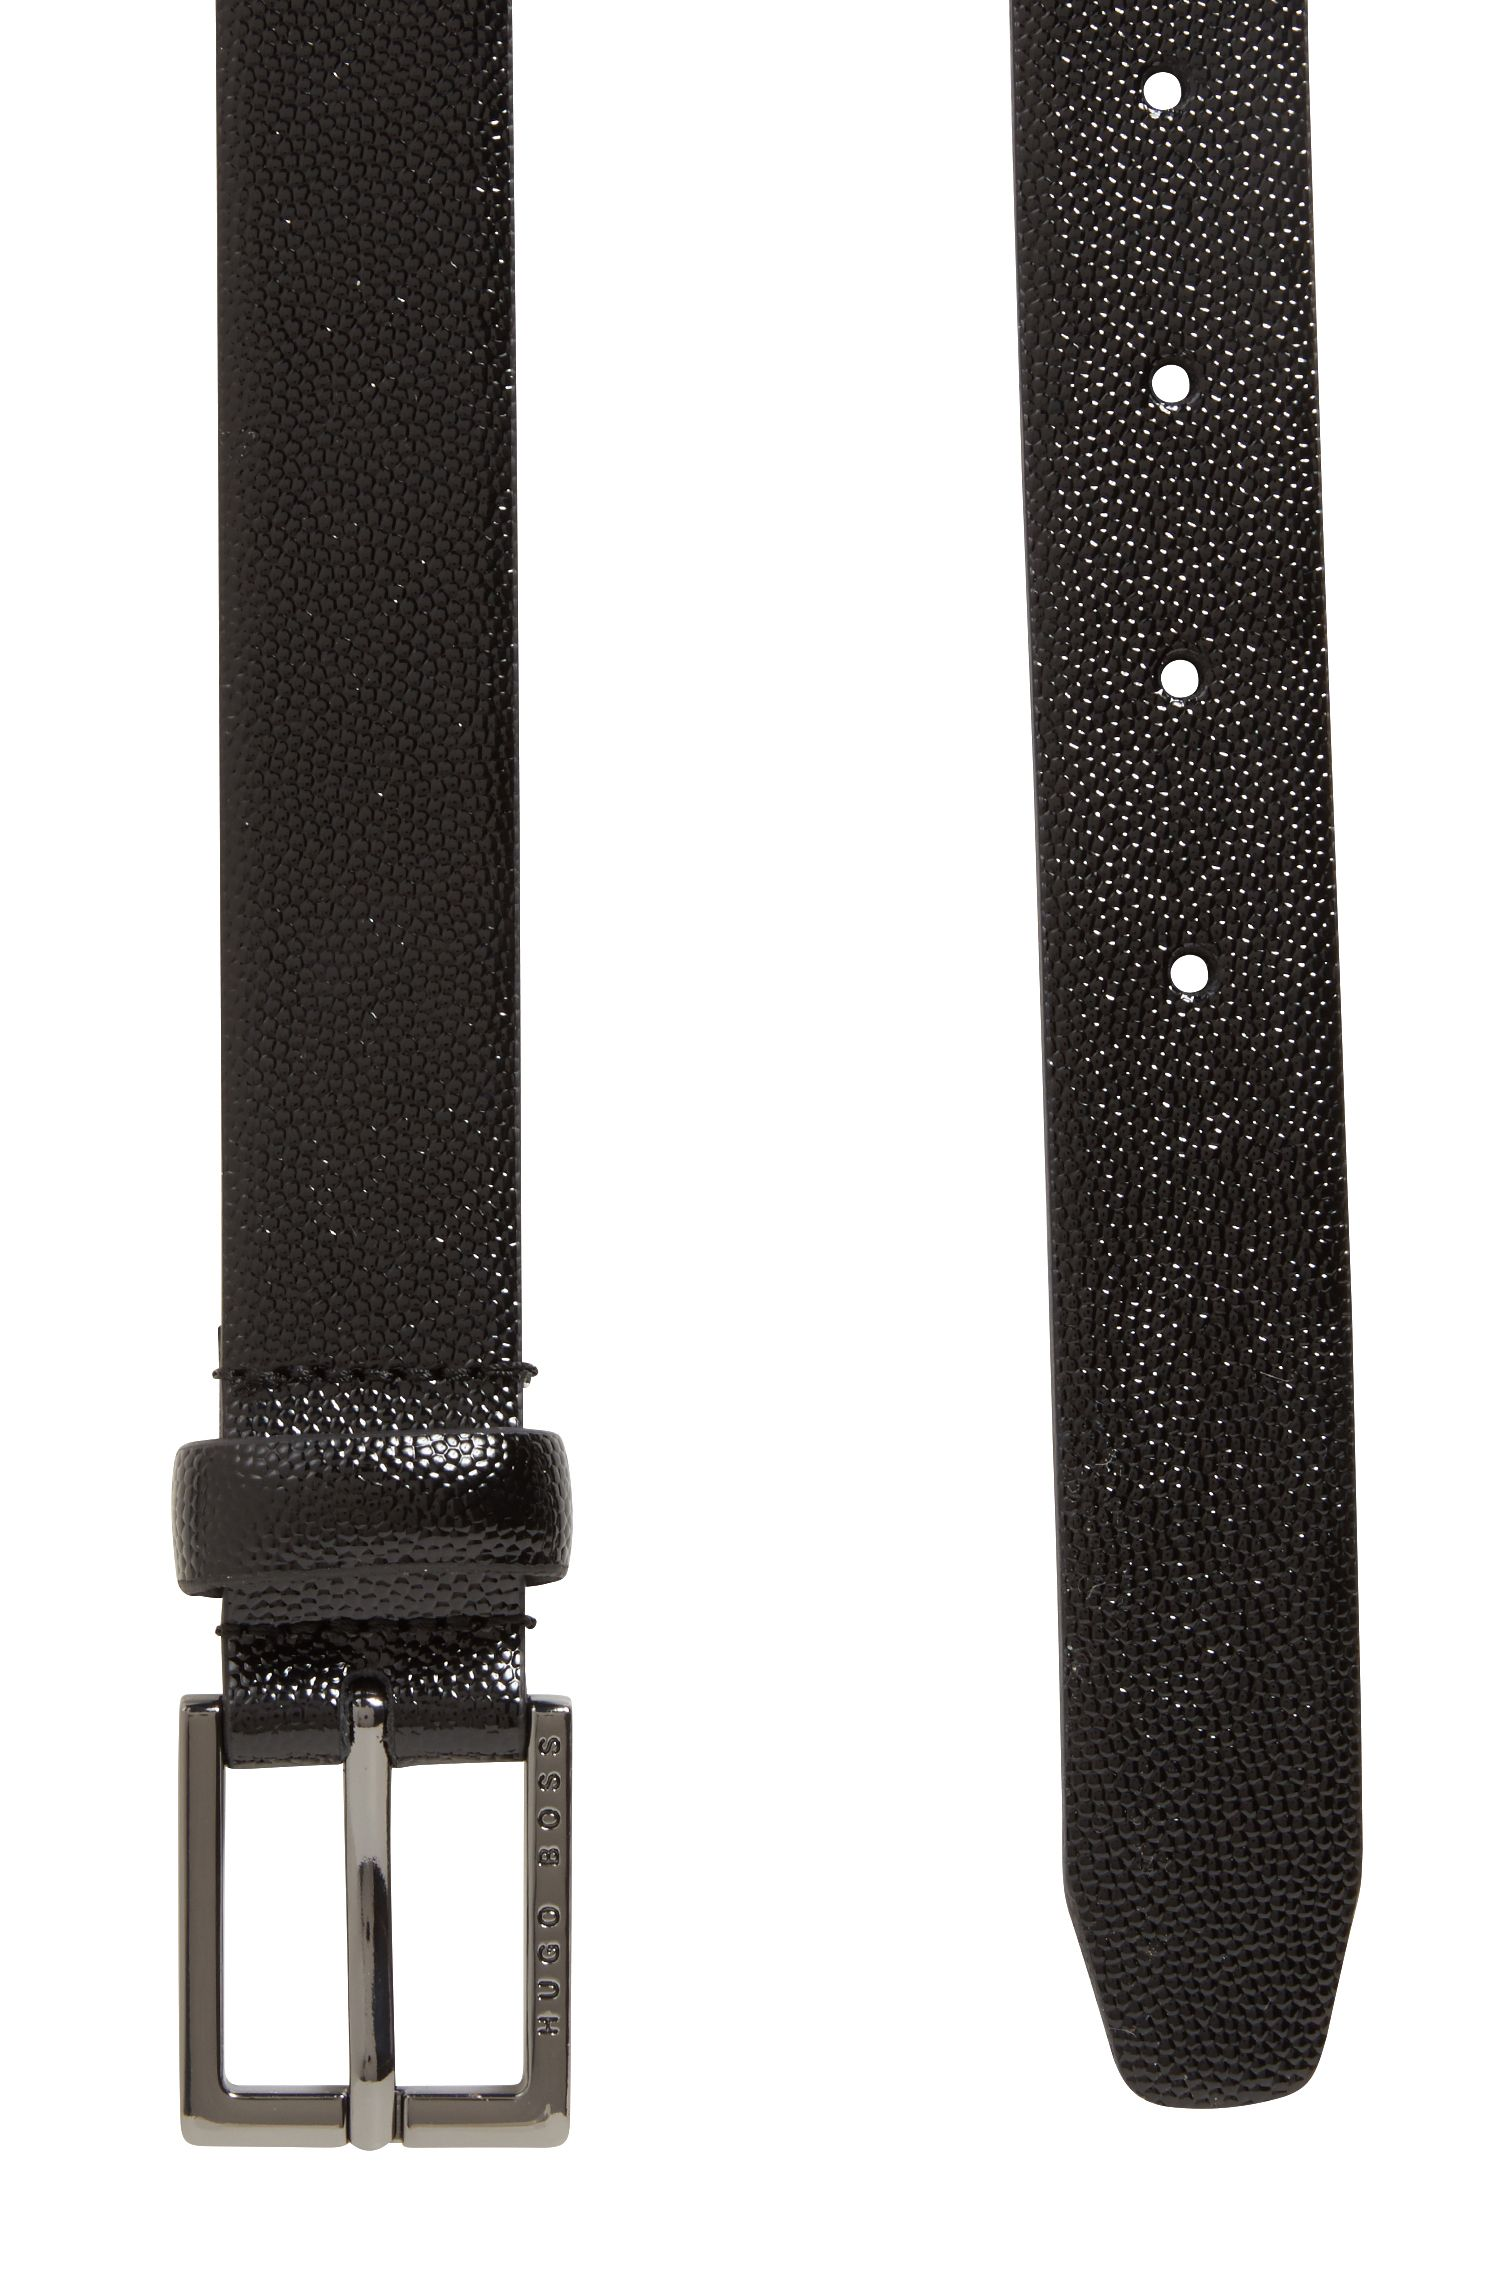 Patent calf-leather belt with Scotch-grain embossing, Black